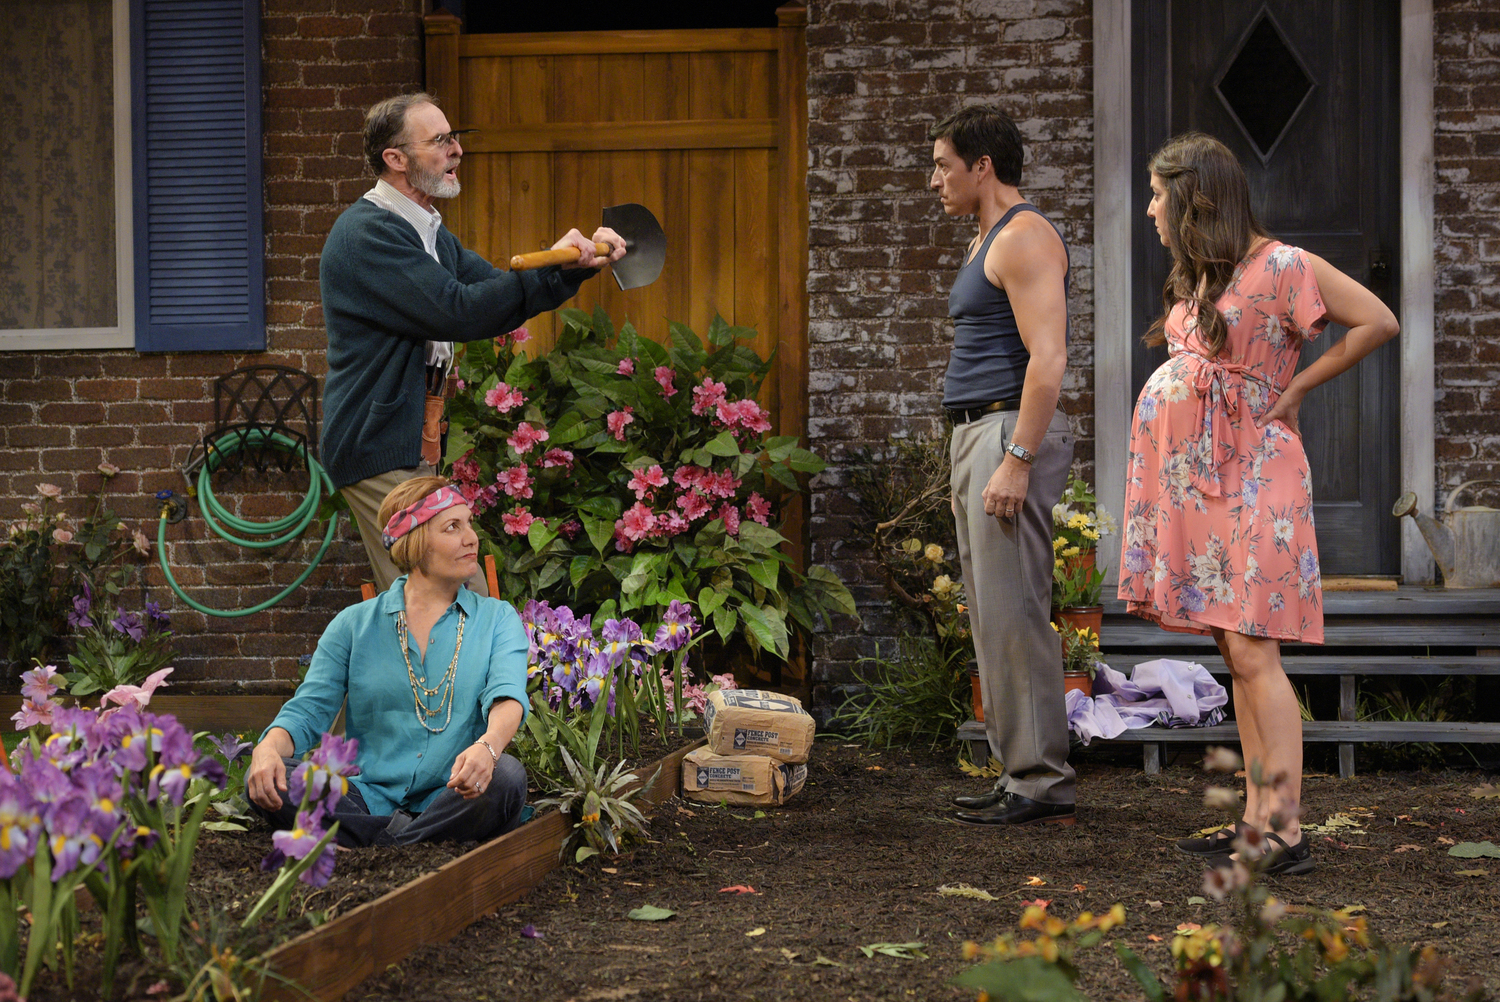 BWW Review: NATIVE GARDENS Sows Mayhem Through Comedy Through 9/16 at TheatreWorks Silicon Valley